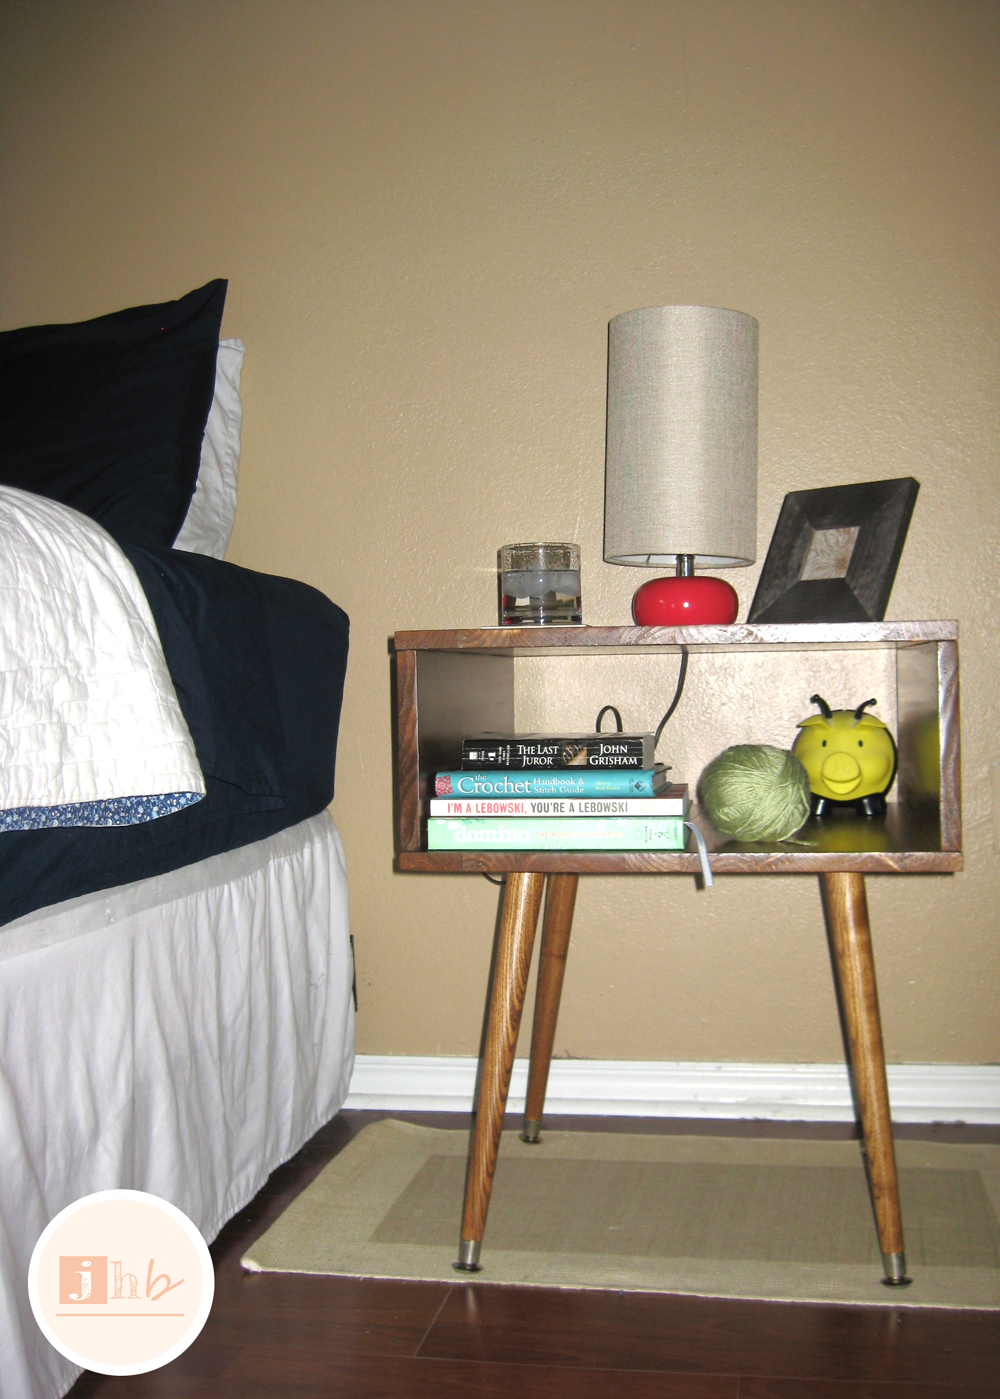 diy mid century style nightstand jamie home blog table done modern nightstands tutorial pottery barn sectional full size daybed with twin trundle simple headboard plans round